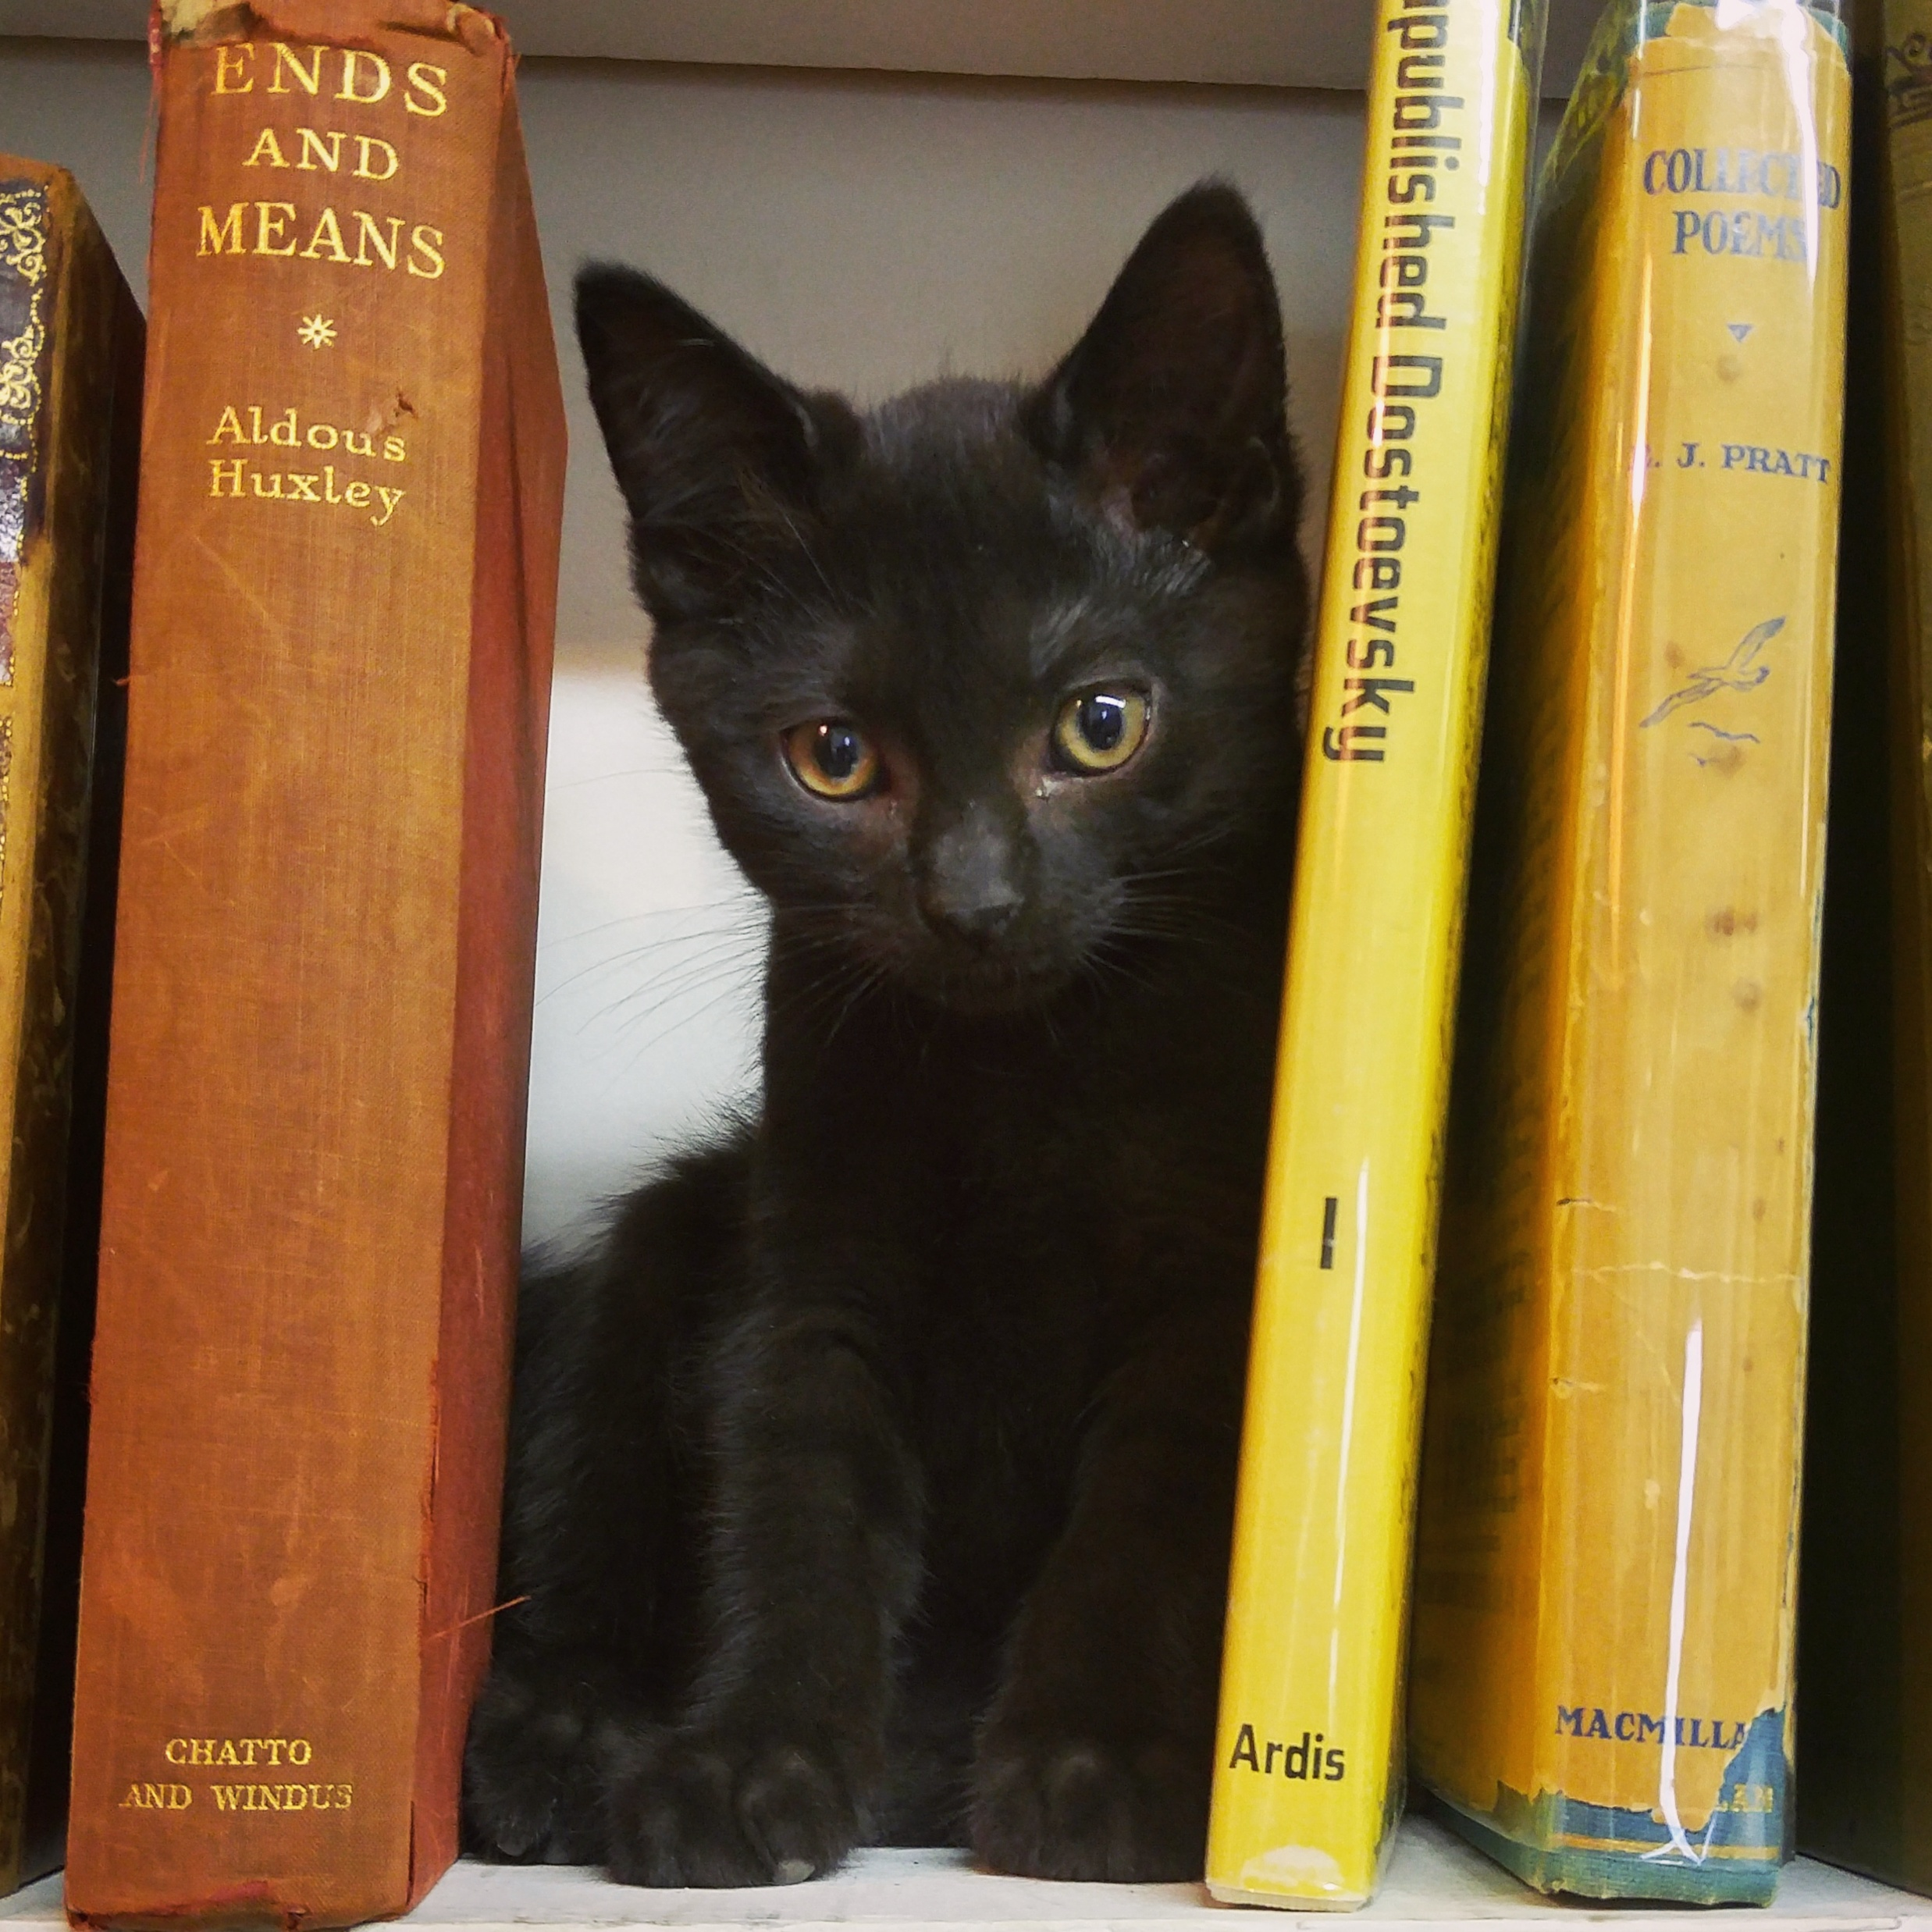 Frodo has fine taste in literature! Nestled right in between Huxley and Dostoevsky!